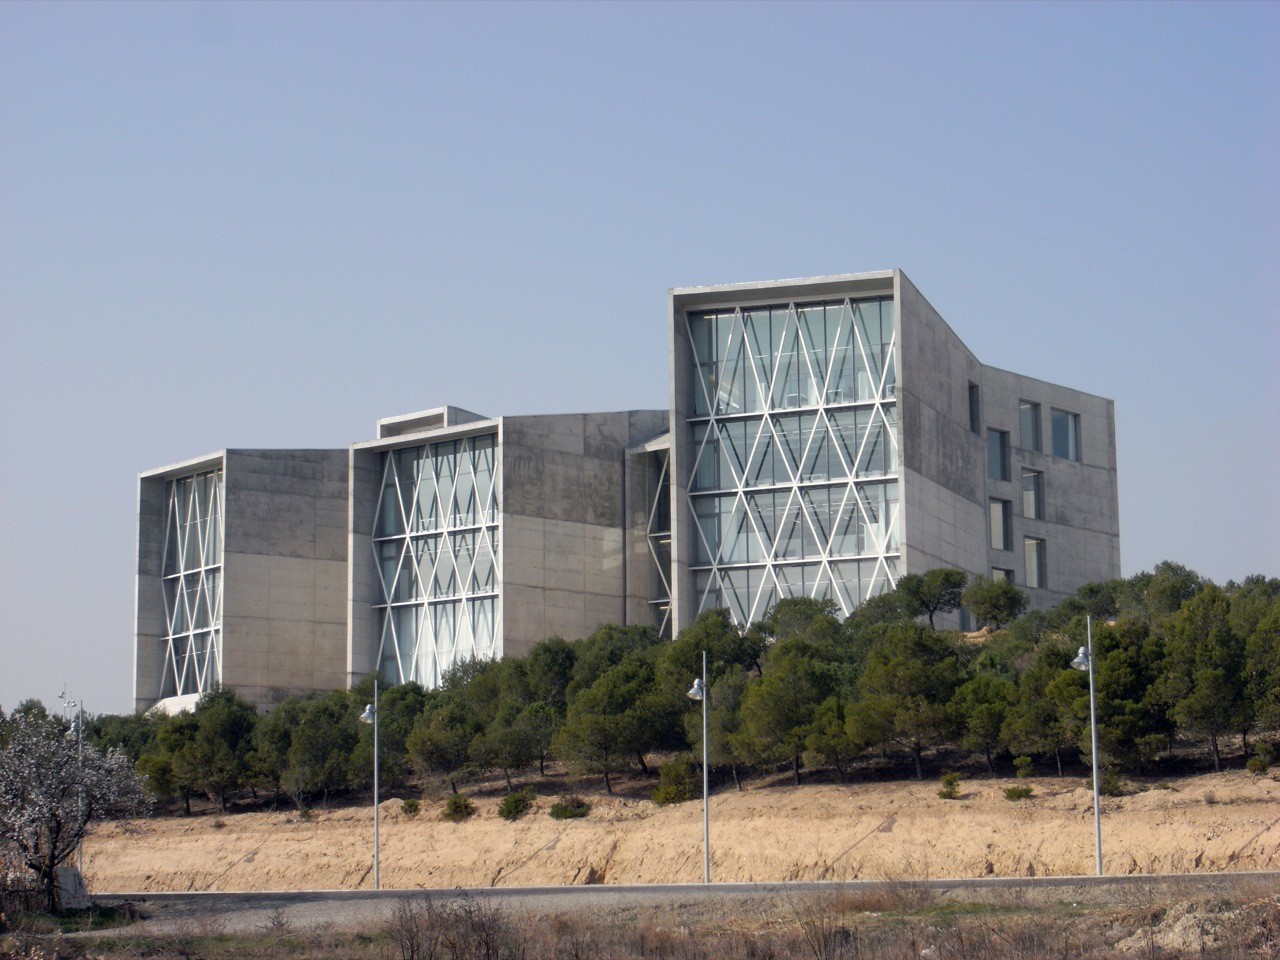 School of Communication, San Jorge University / Taller Básico de Arquitectura, © Xabier Ilundain Madurga